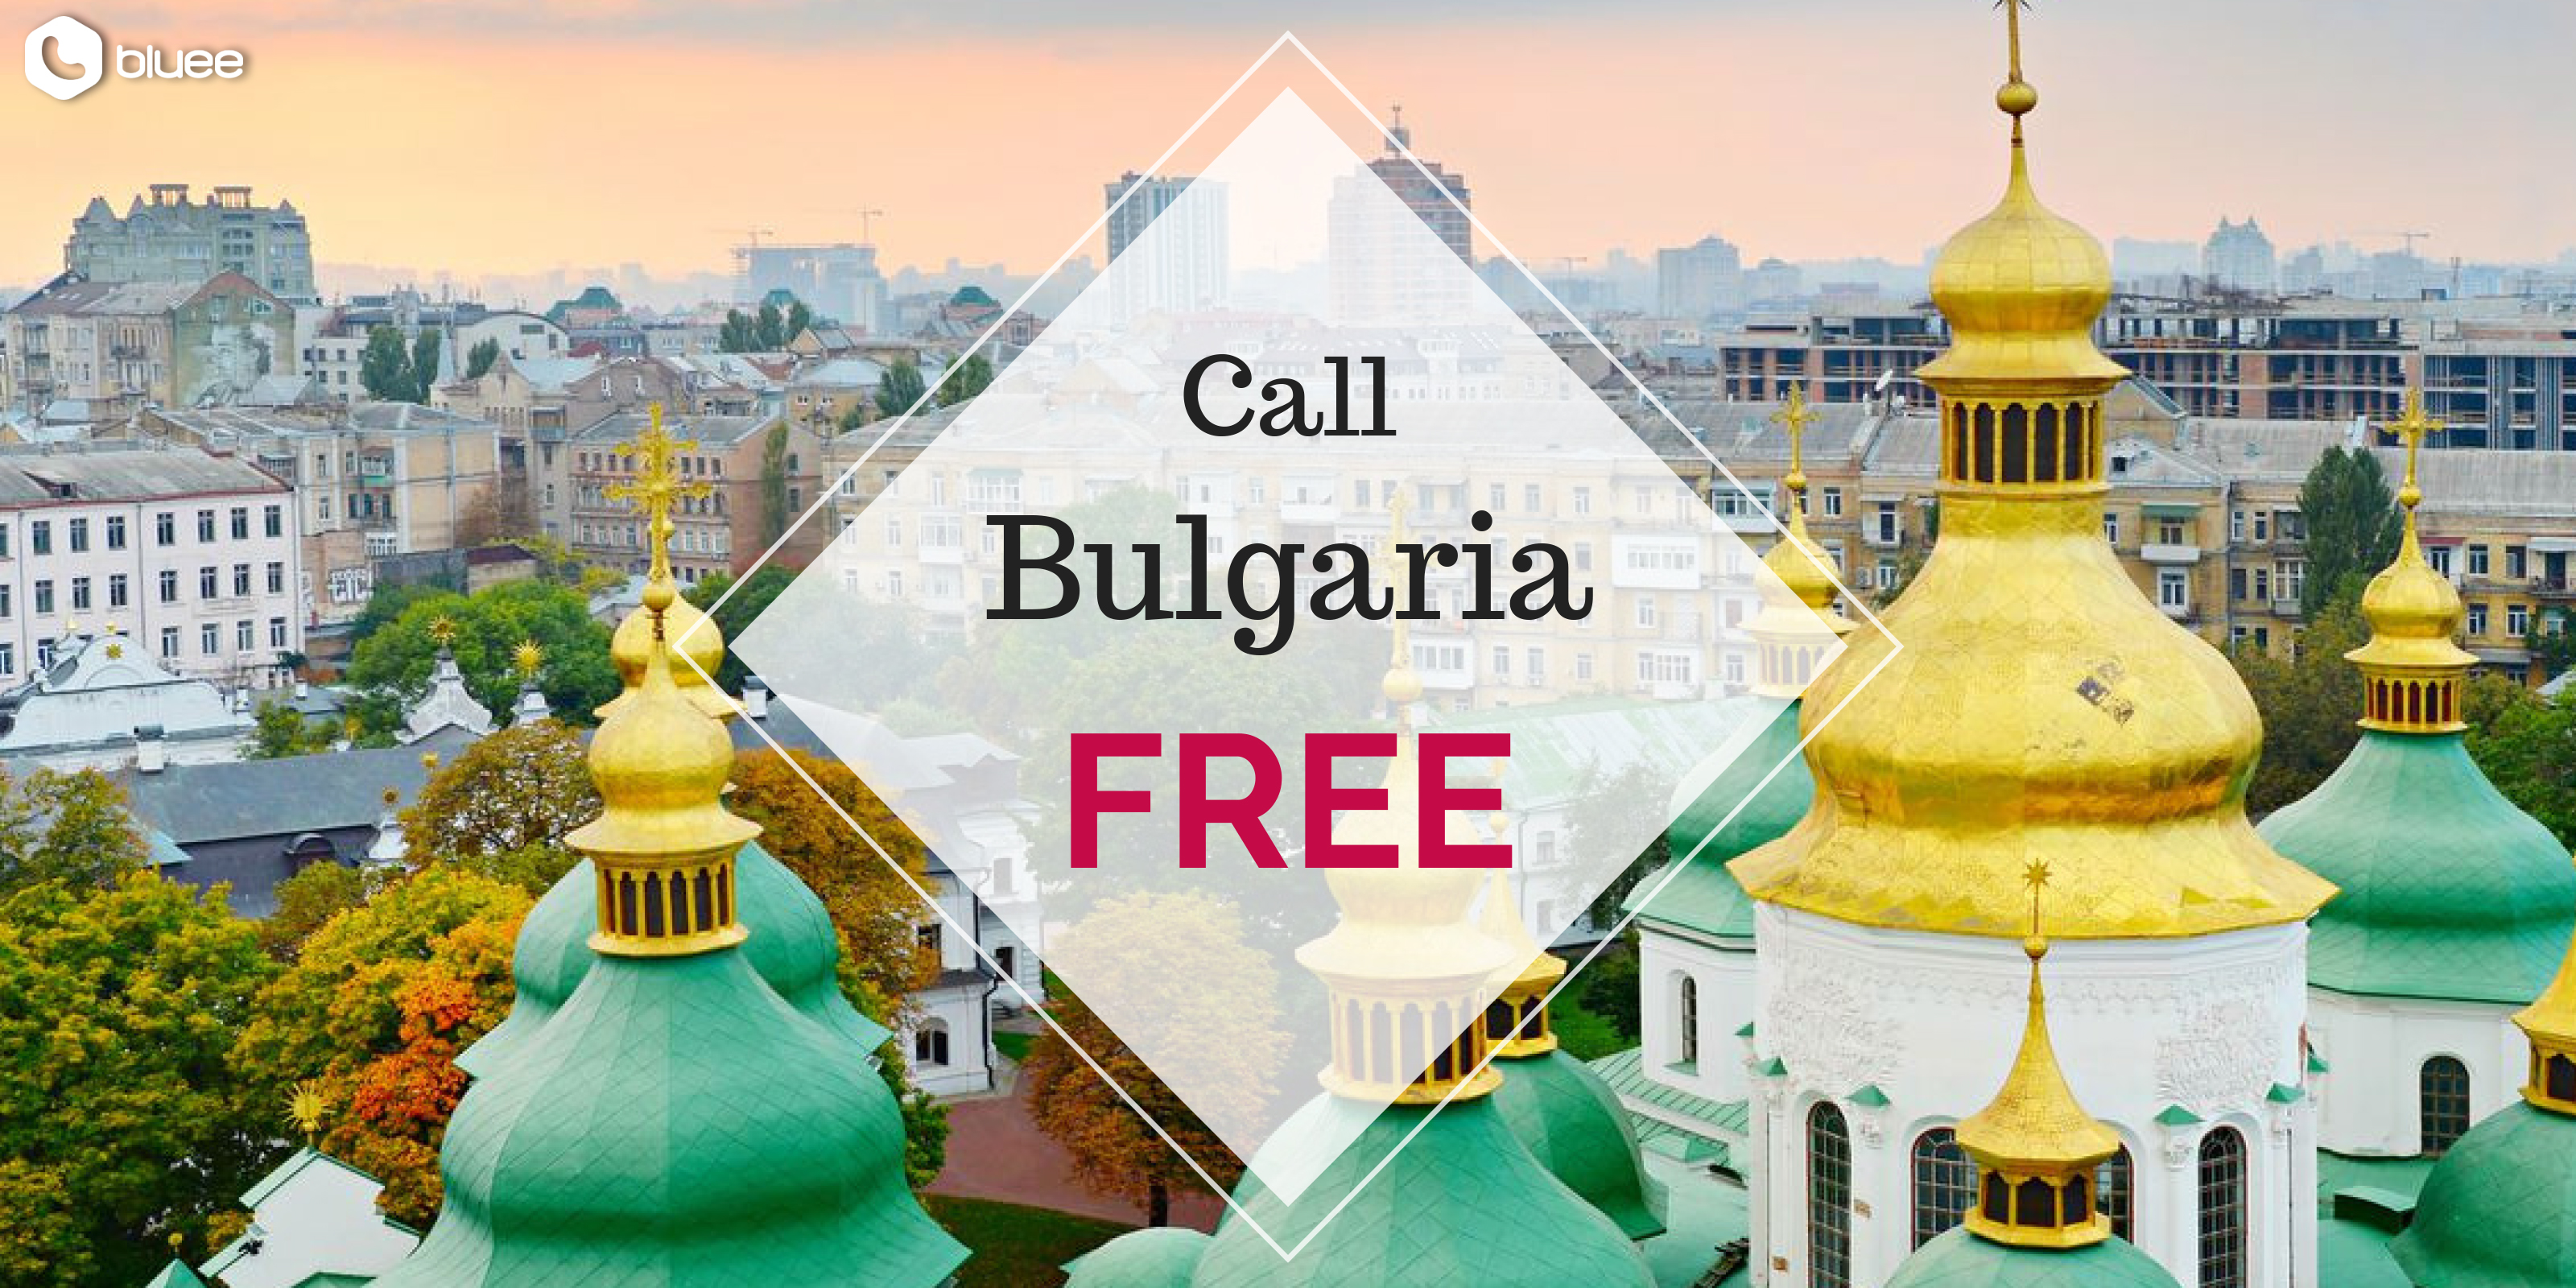 Free Thursday: Call Bulgaria Landline for FREE!